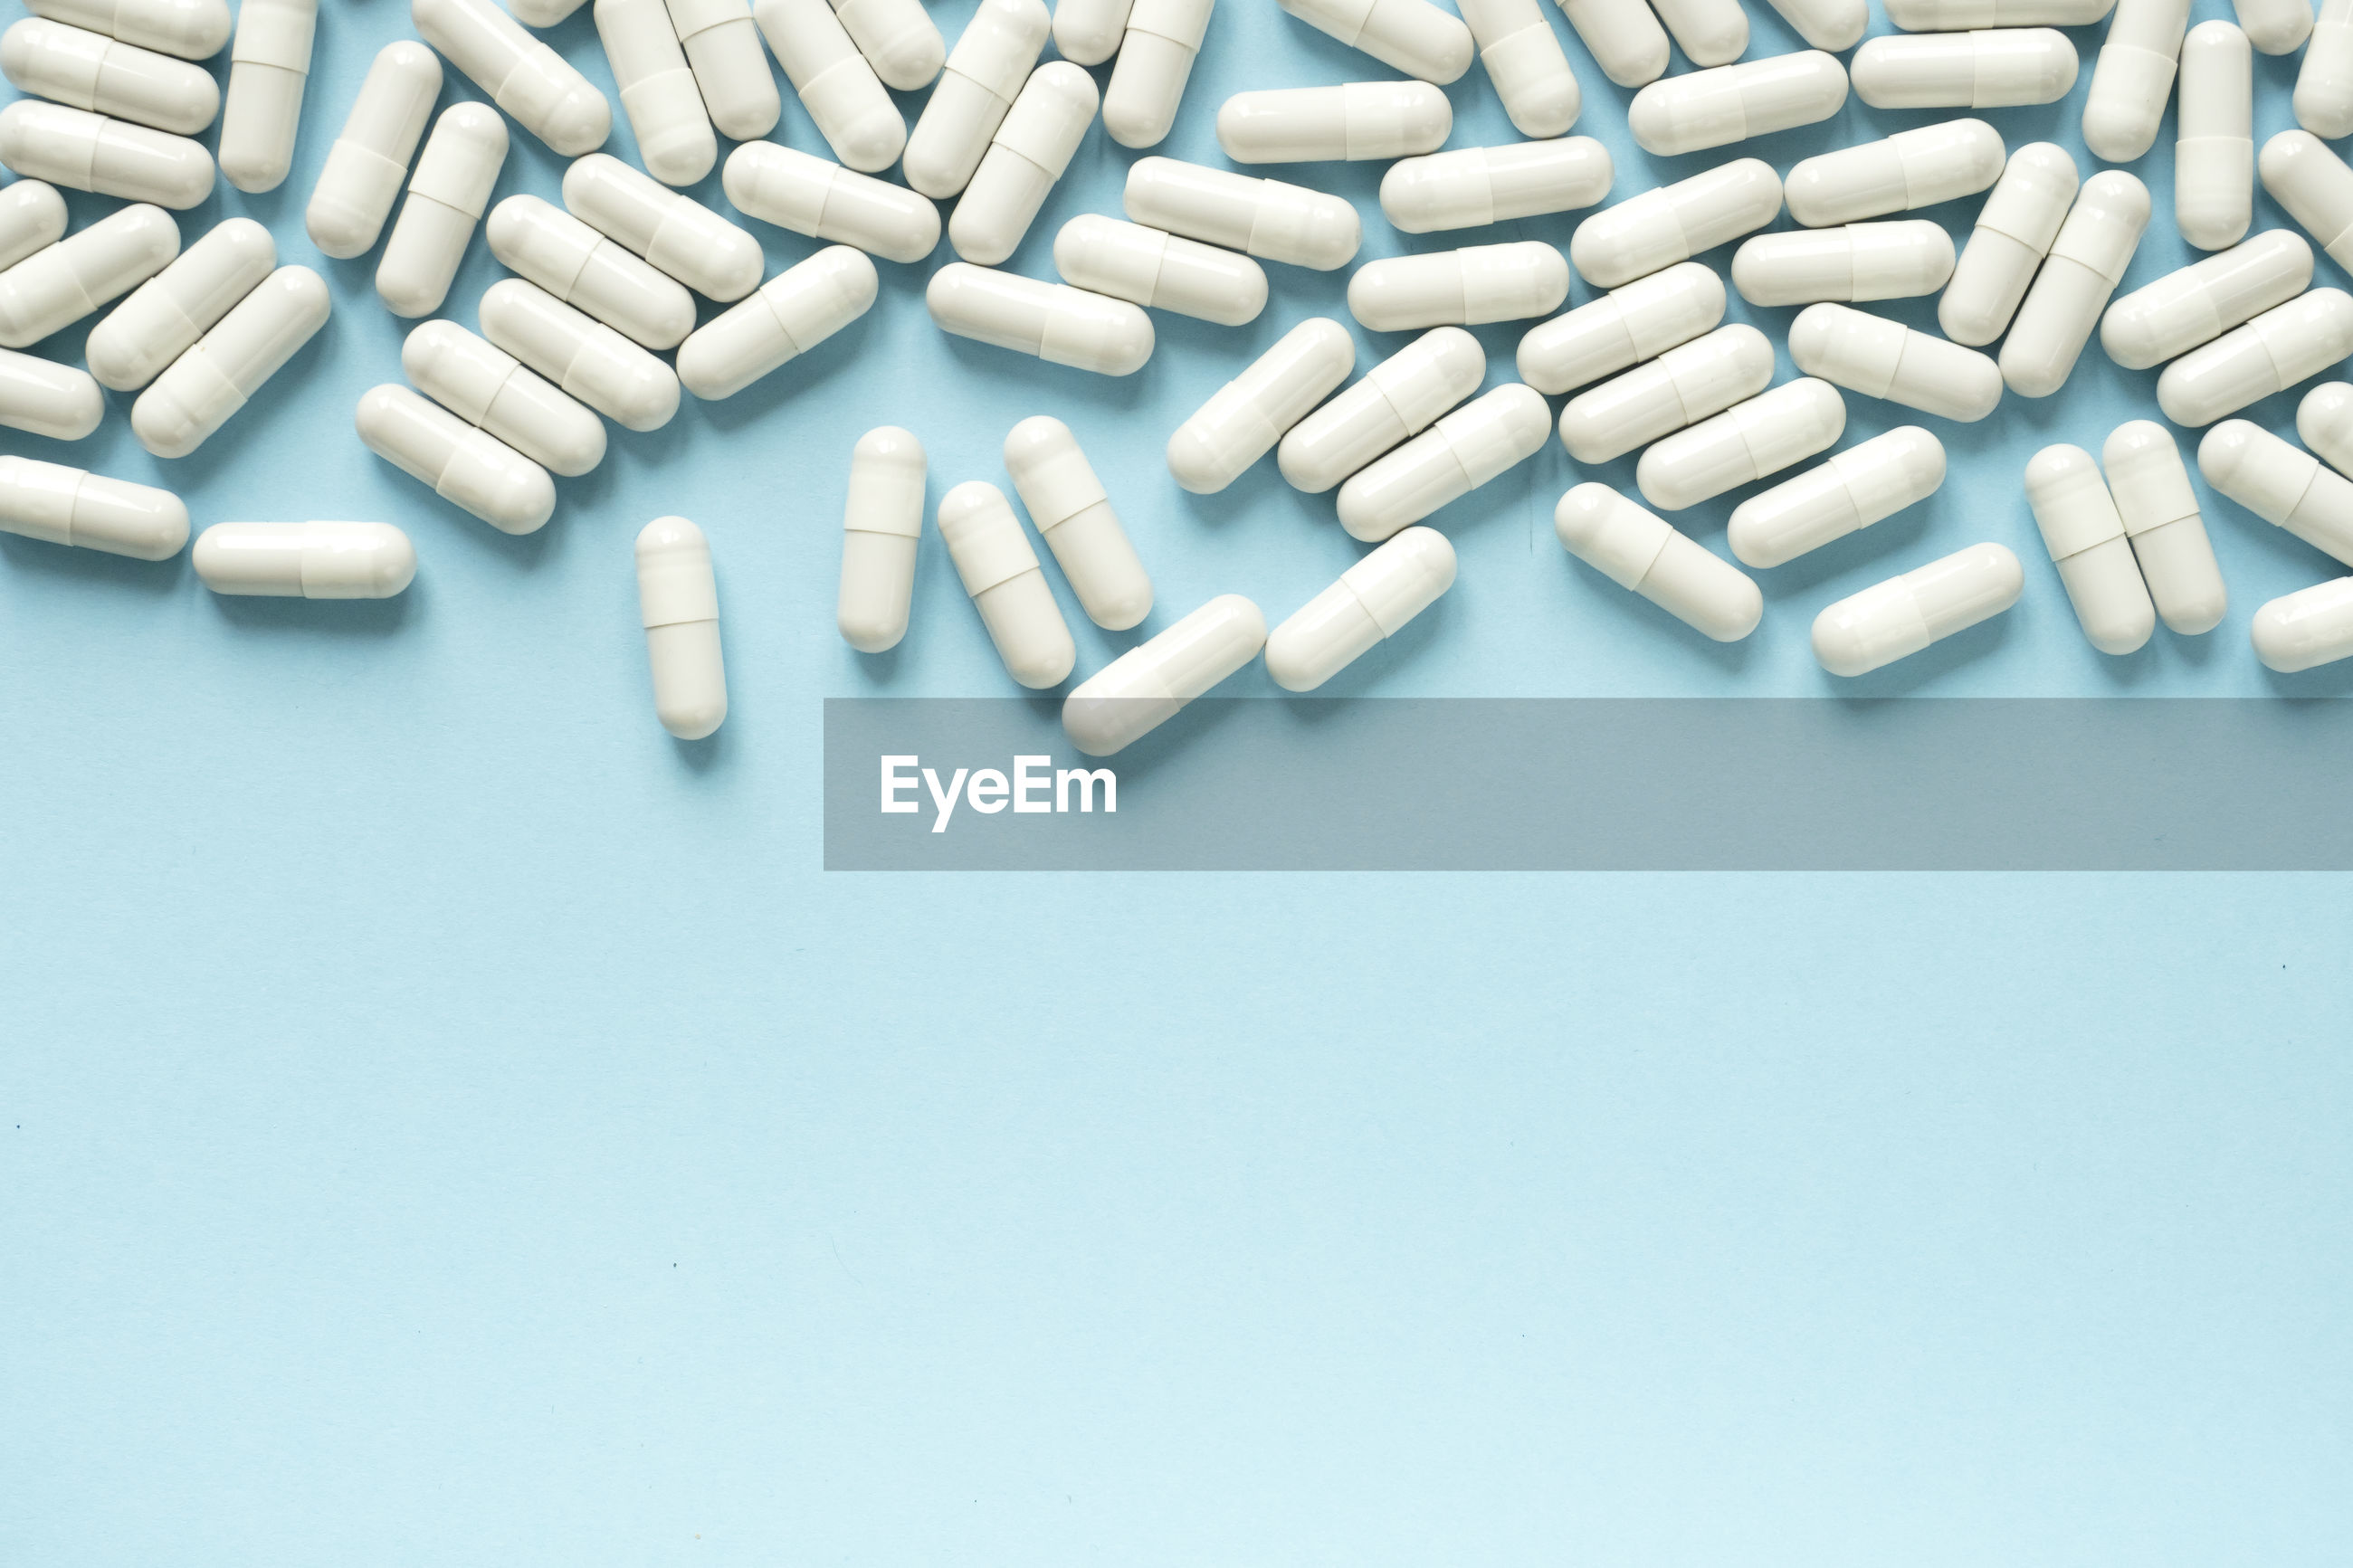 High angle view of pills  on blue background